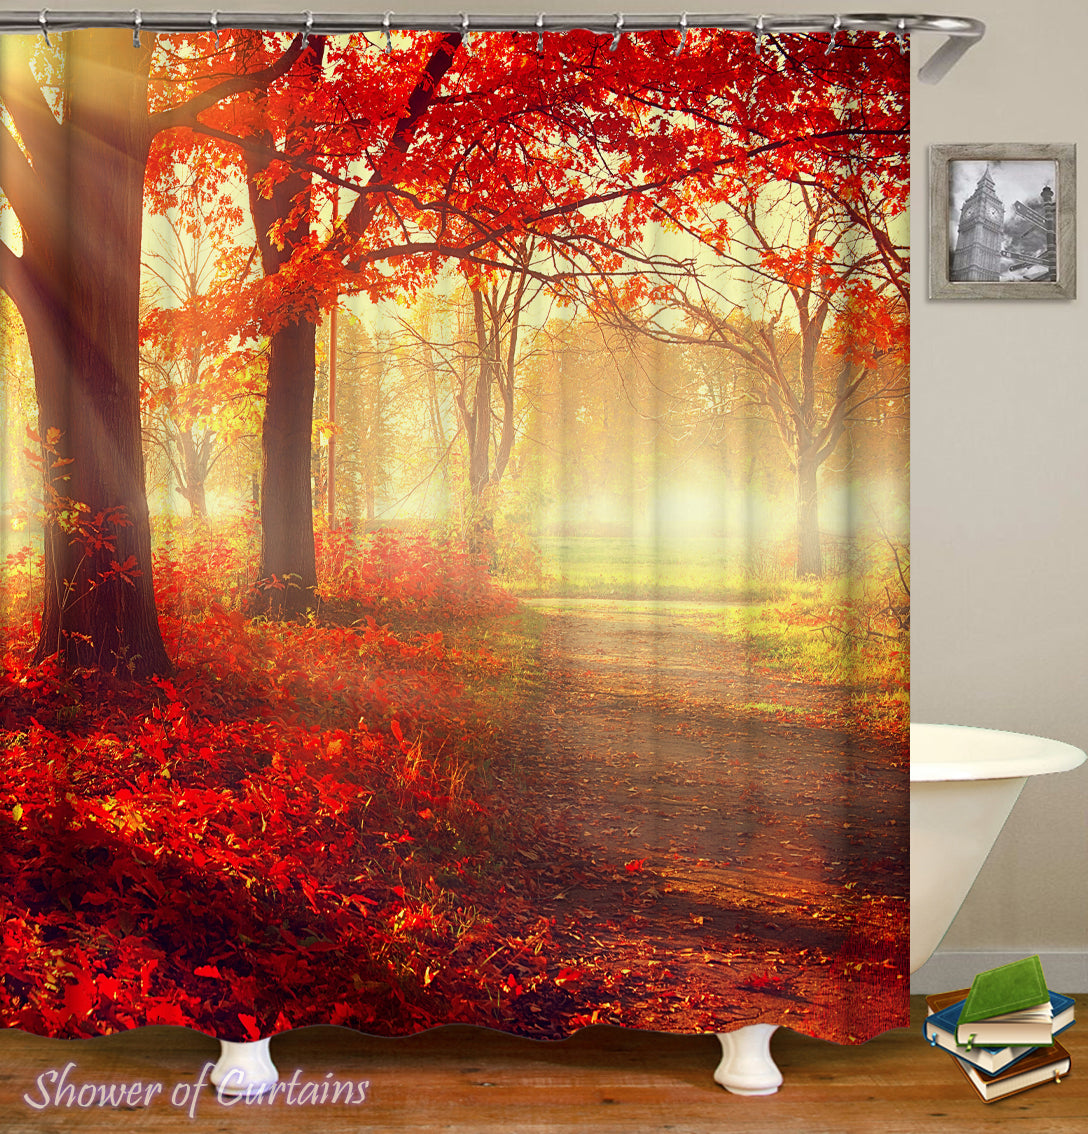 Gentil Sunset In The Autumn Shower Curtain